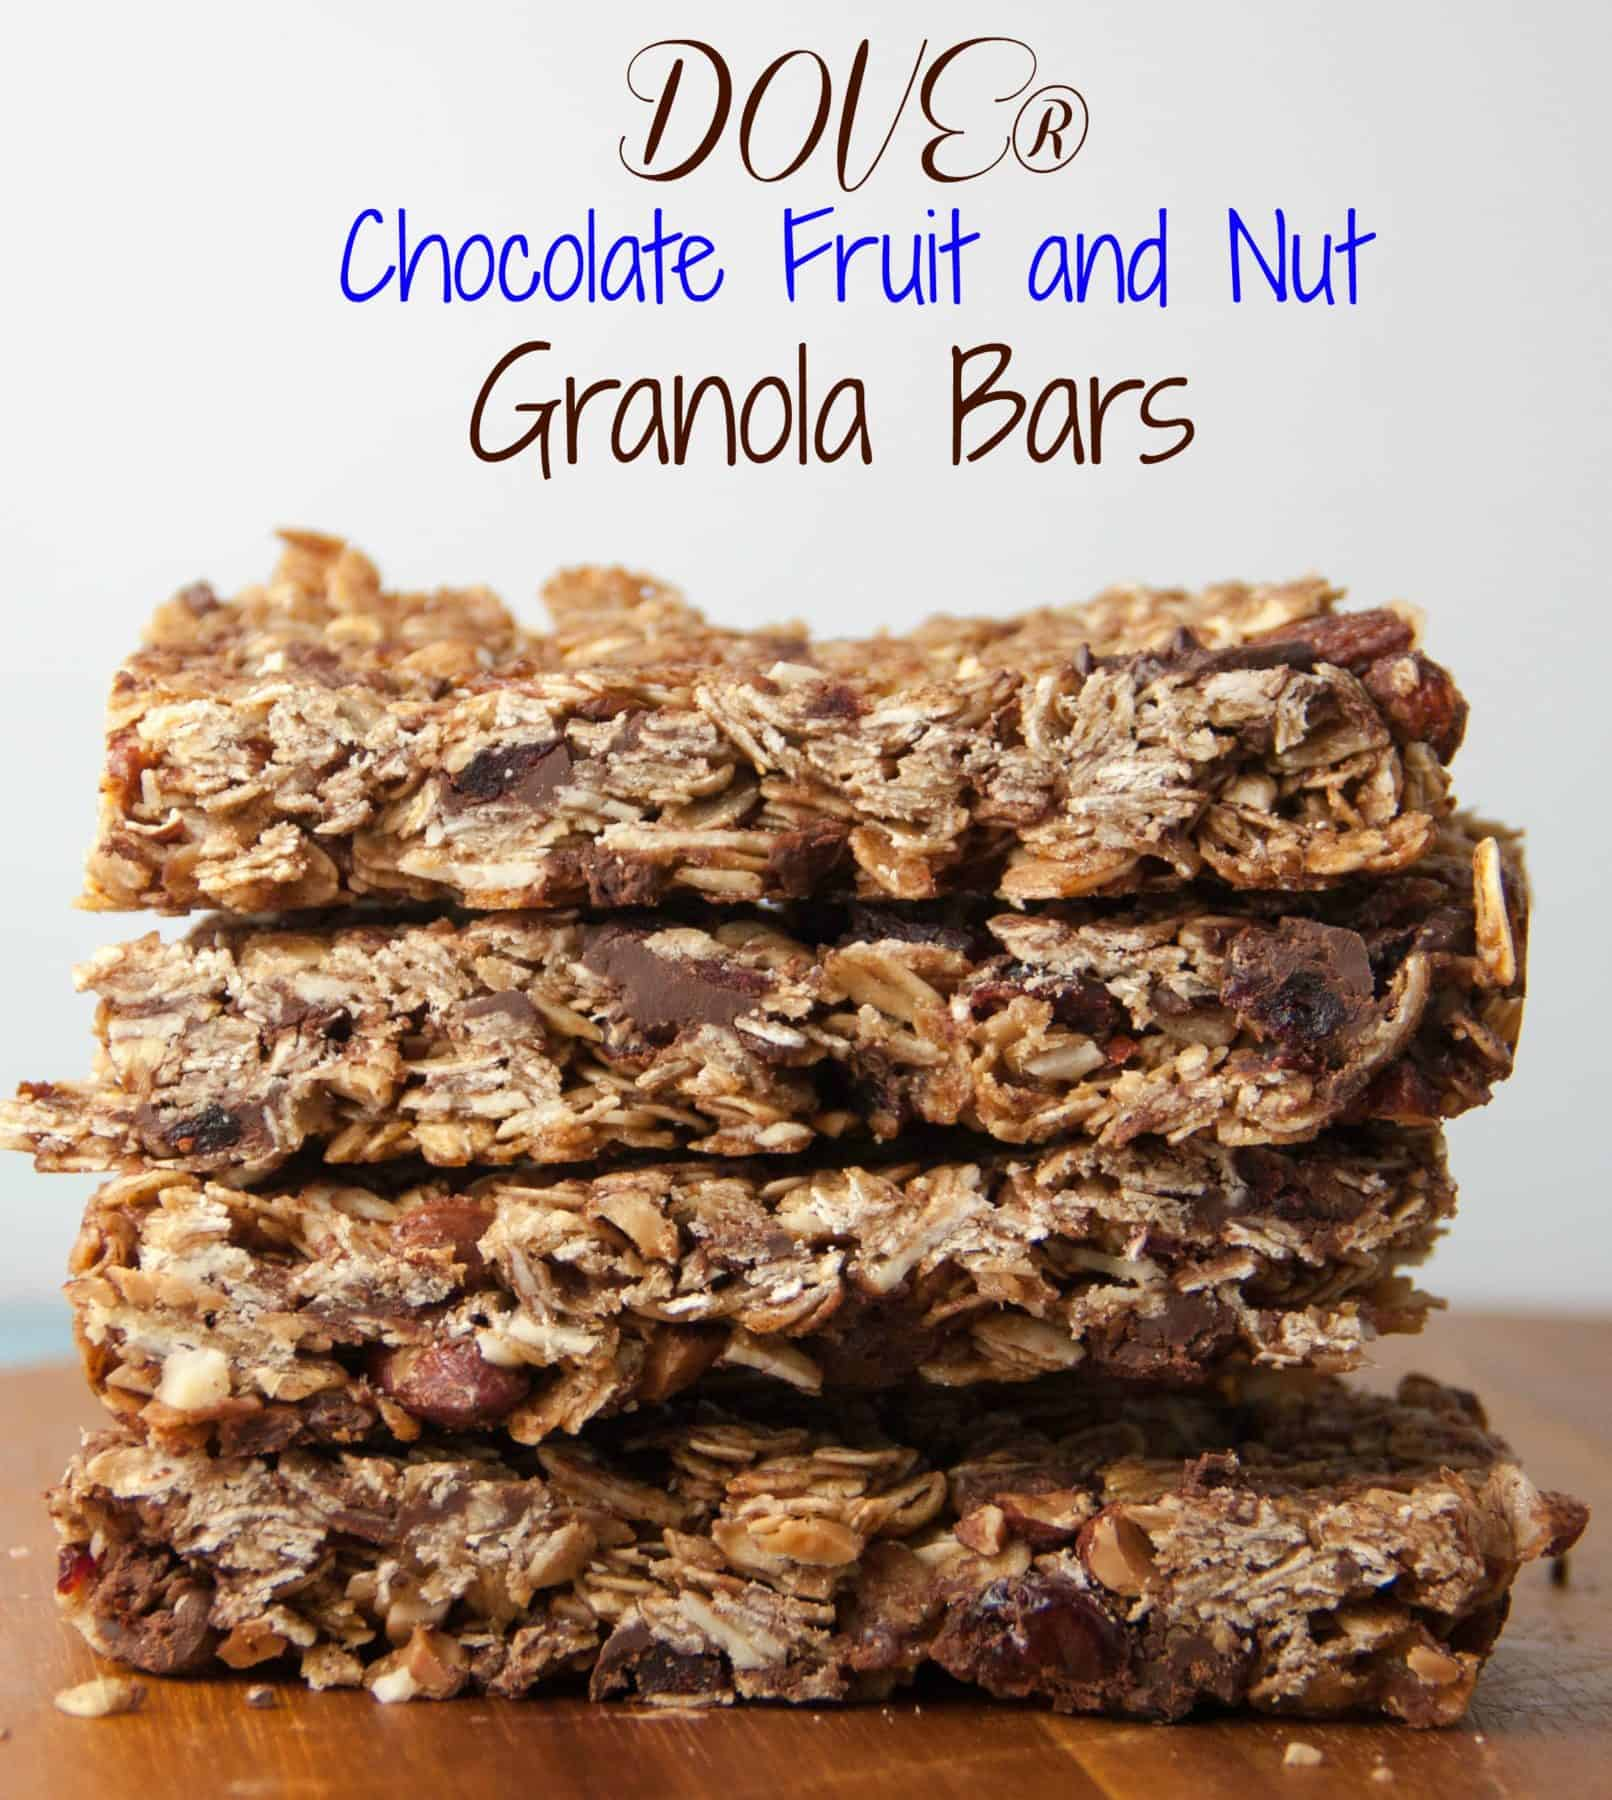 DOVE® Chocolate Fruit and Nut Granola Bars